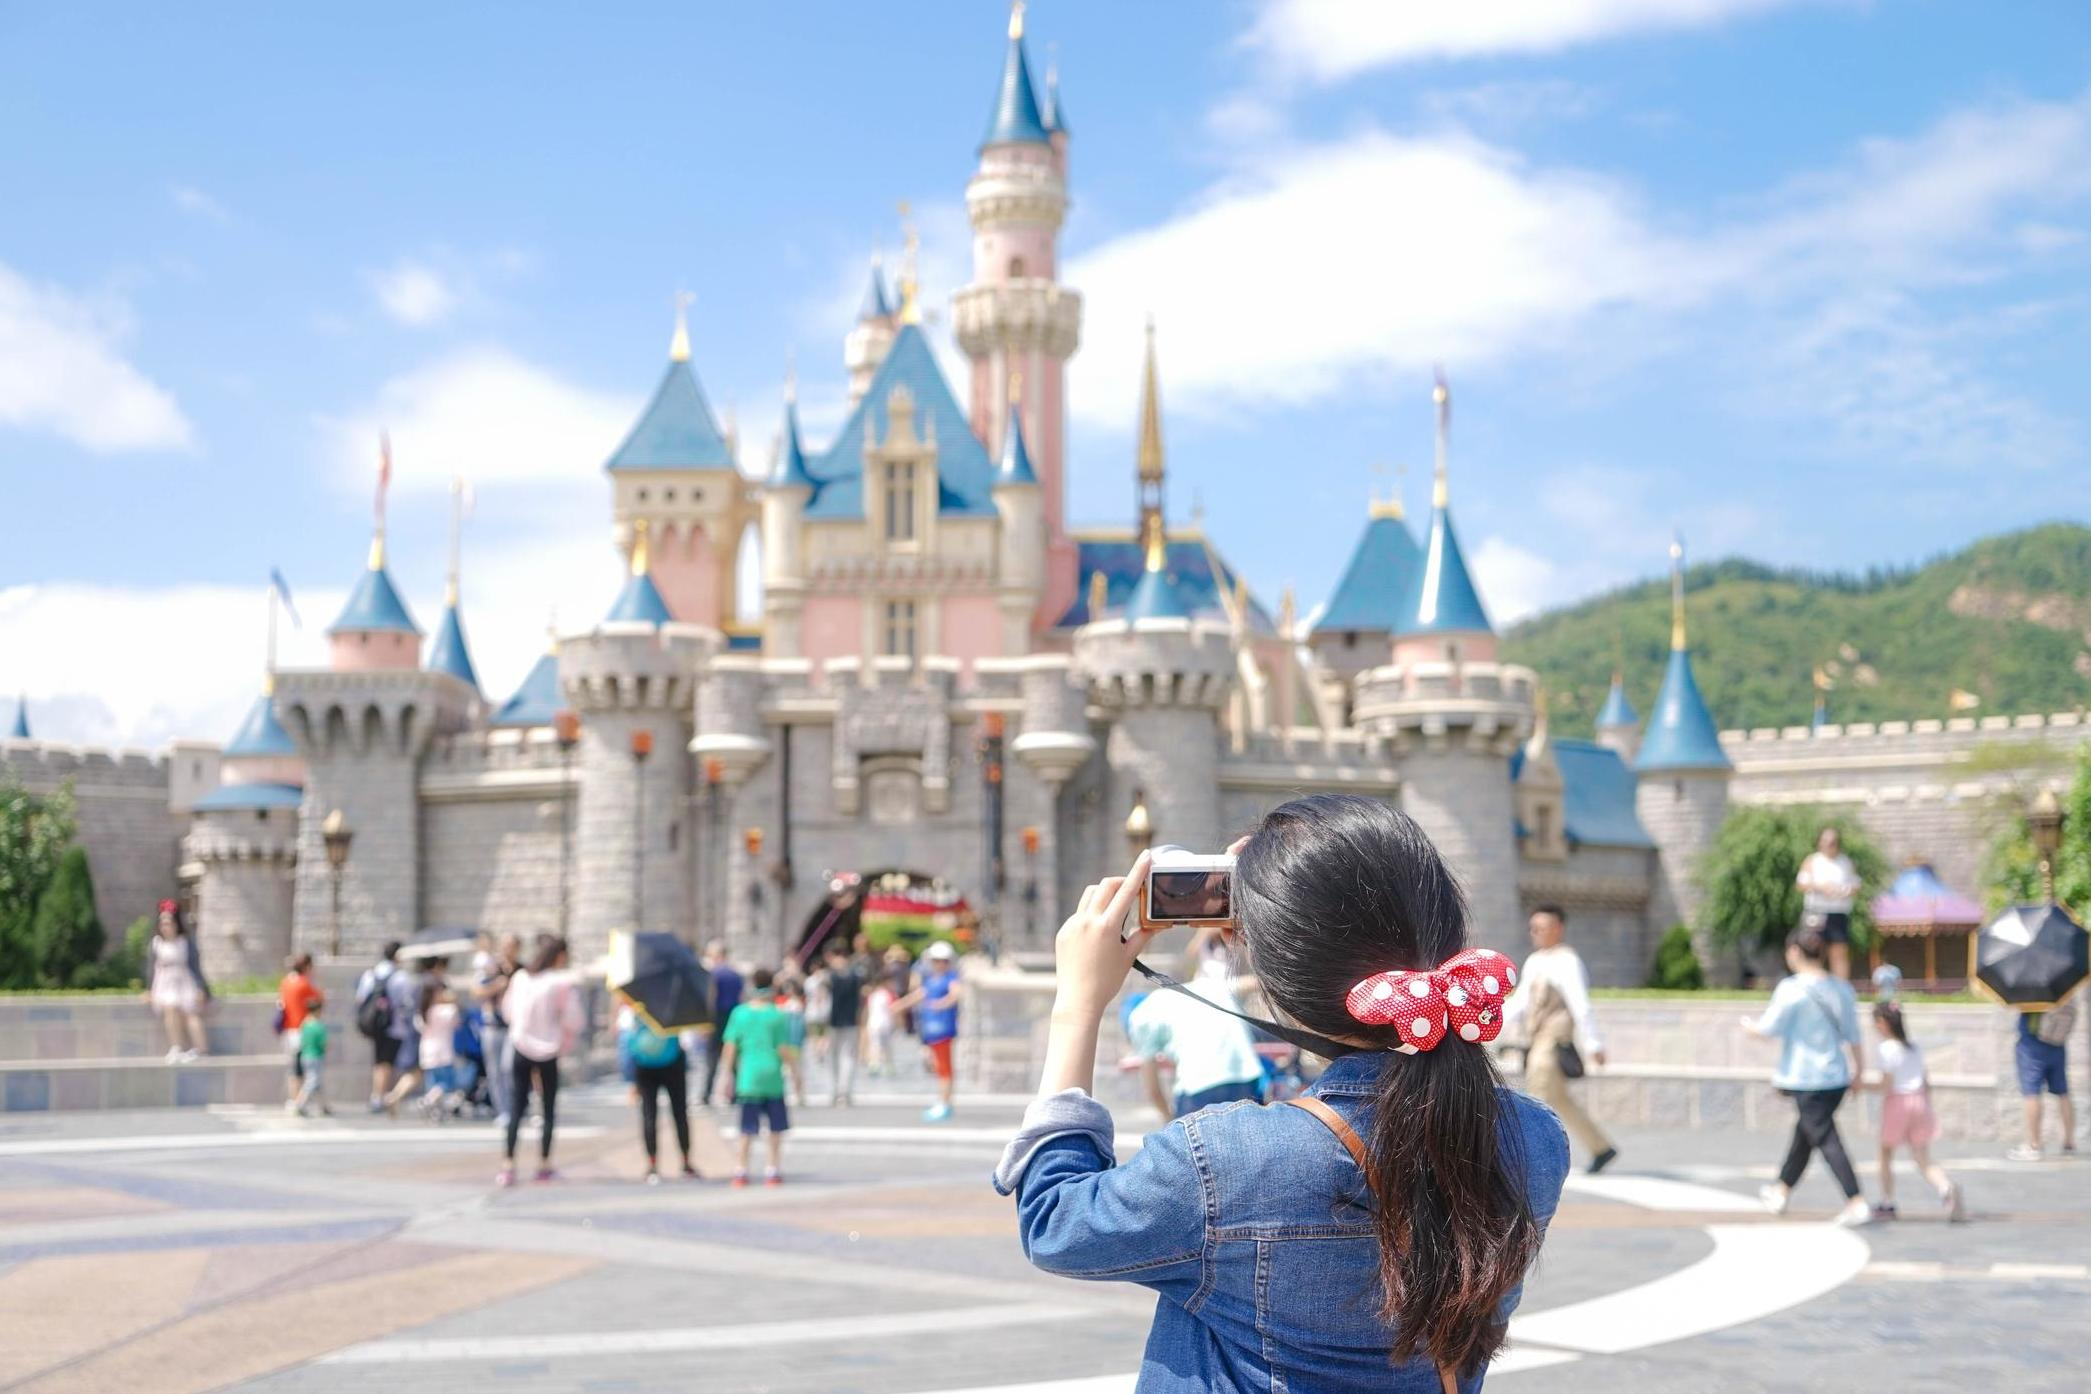 Disney World: Mother says childless millennials should be